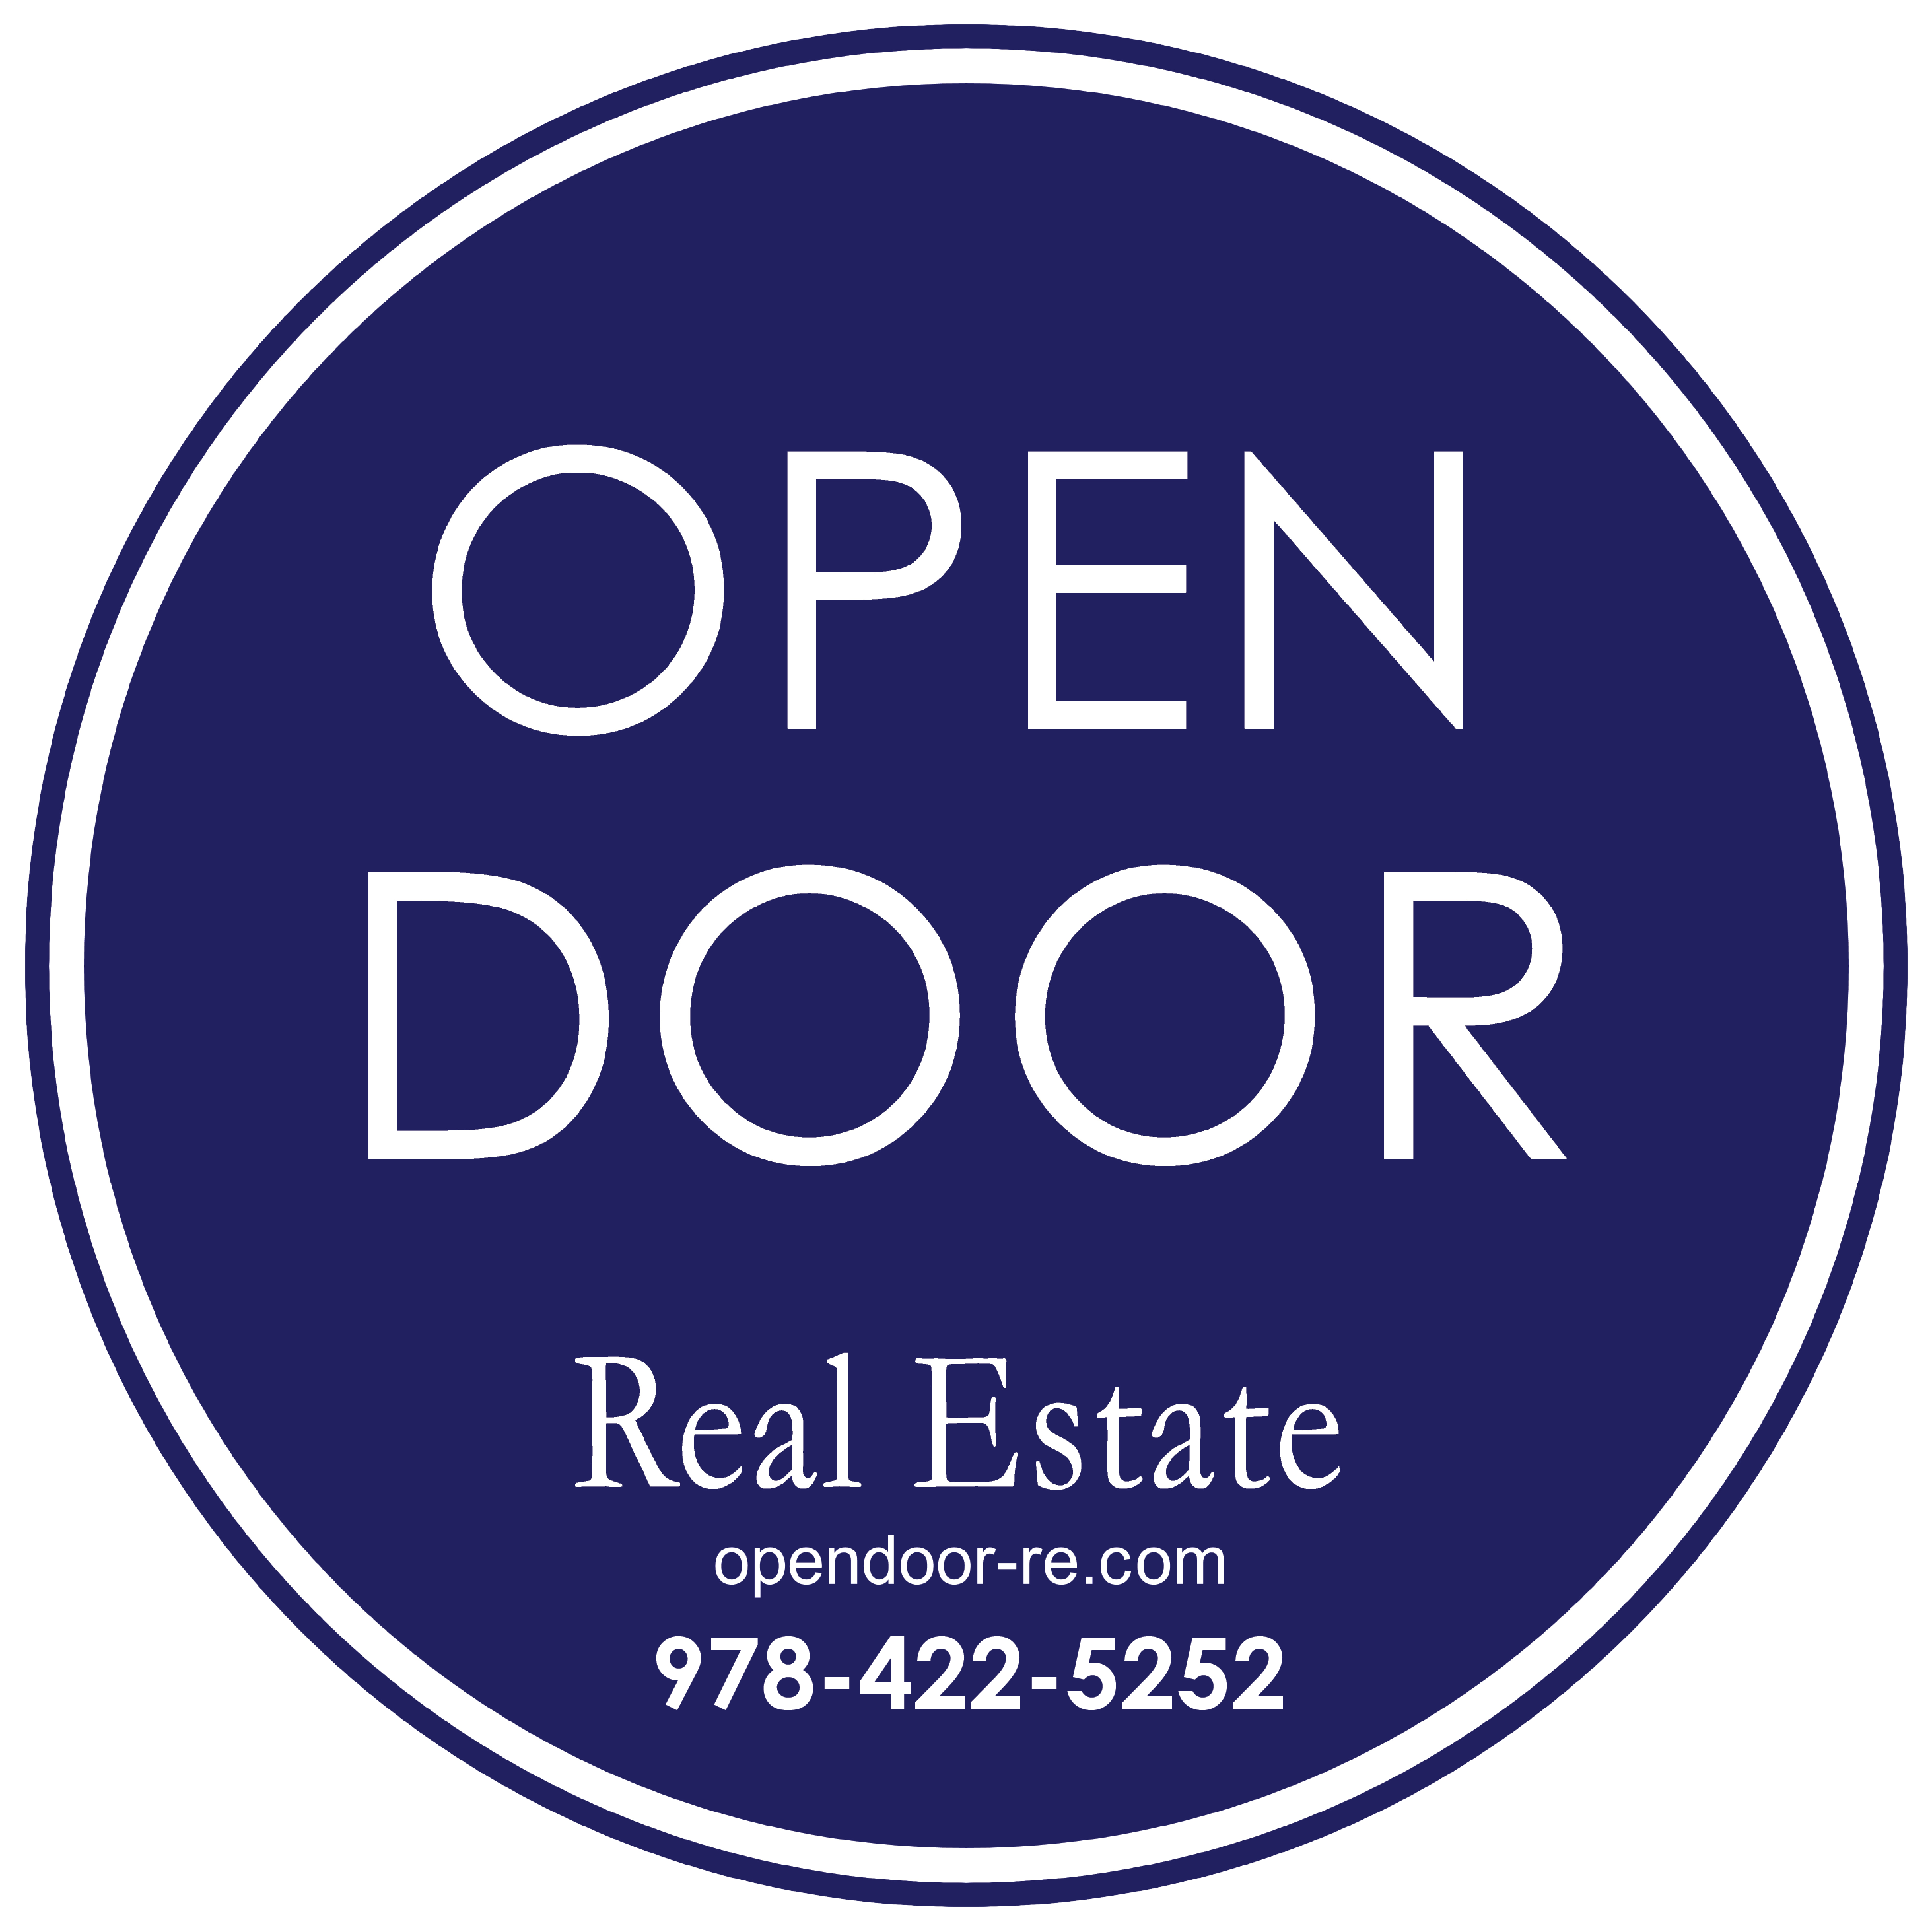 OPEN DOOR Real Estate